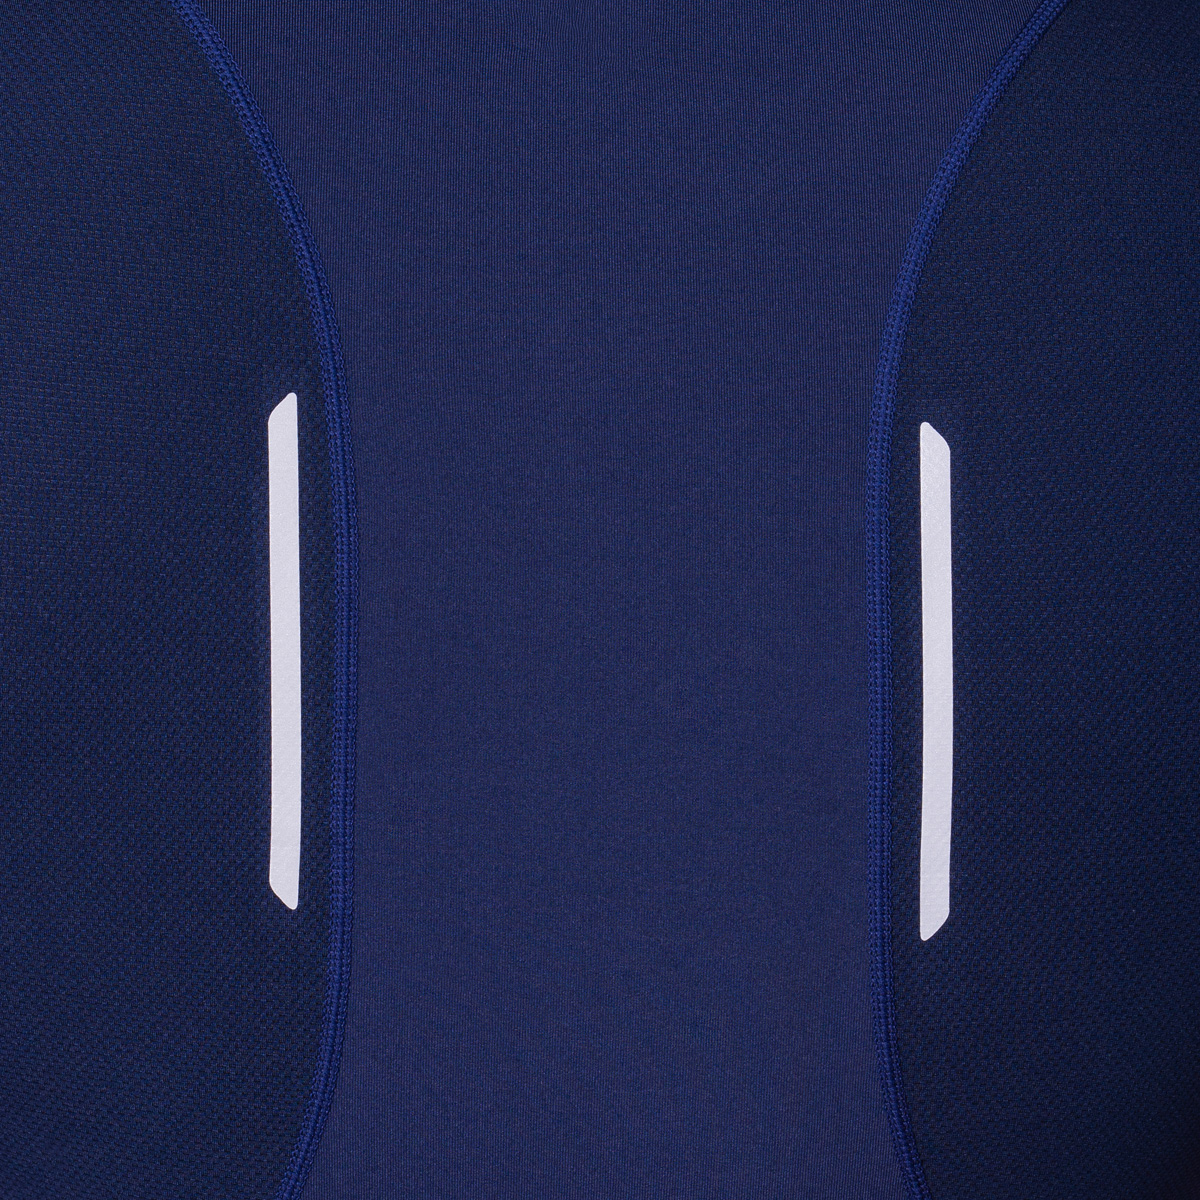 Essential Mesh Blocking Tight-Fit T-Shirt for Men in Navy | Gym Aesthetics